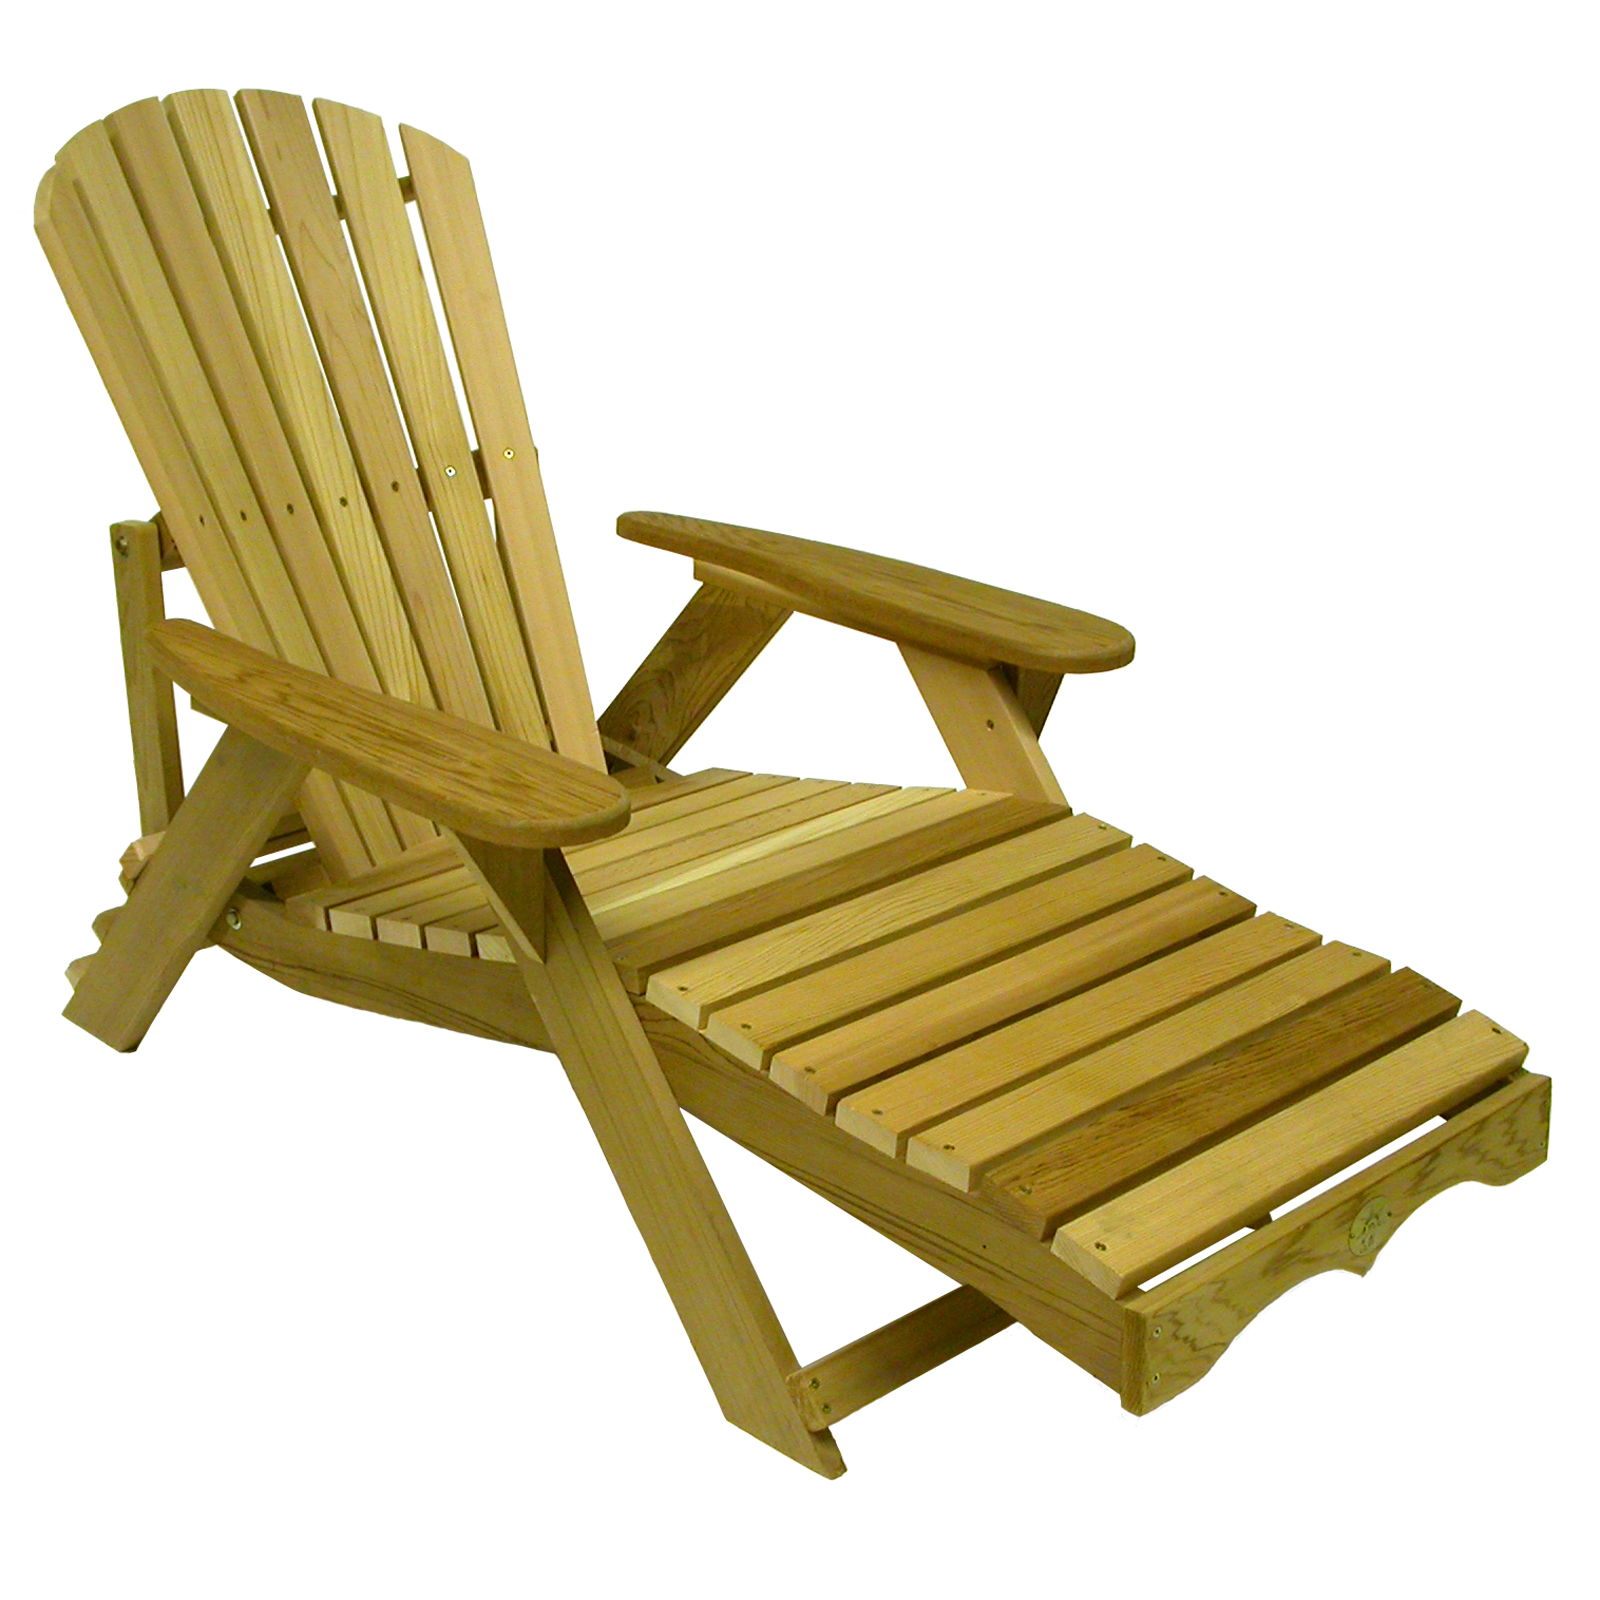 bear chair adirondack chaise lounge kit pine at hayneedle